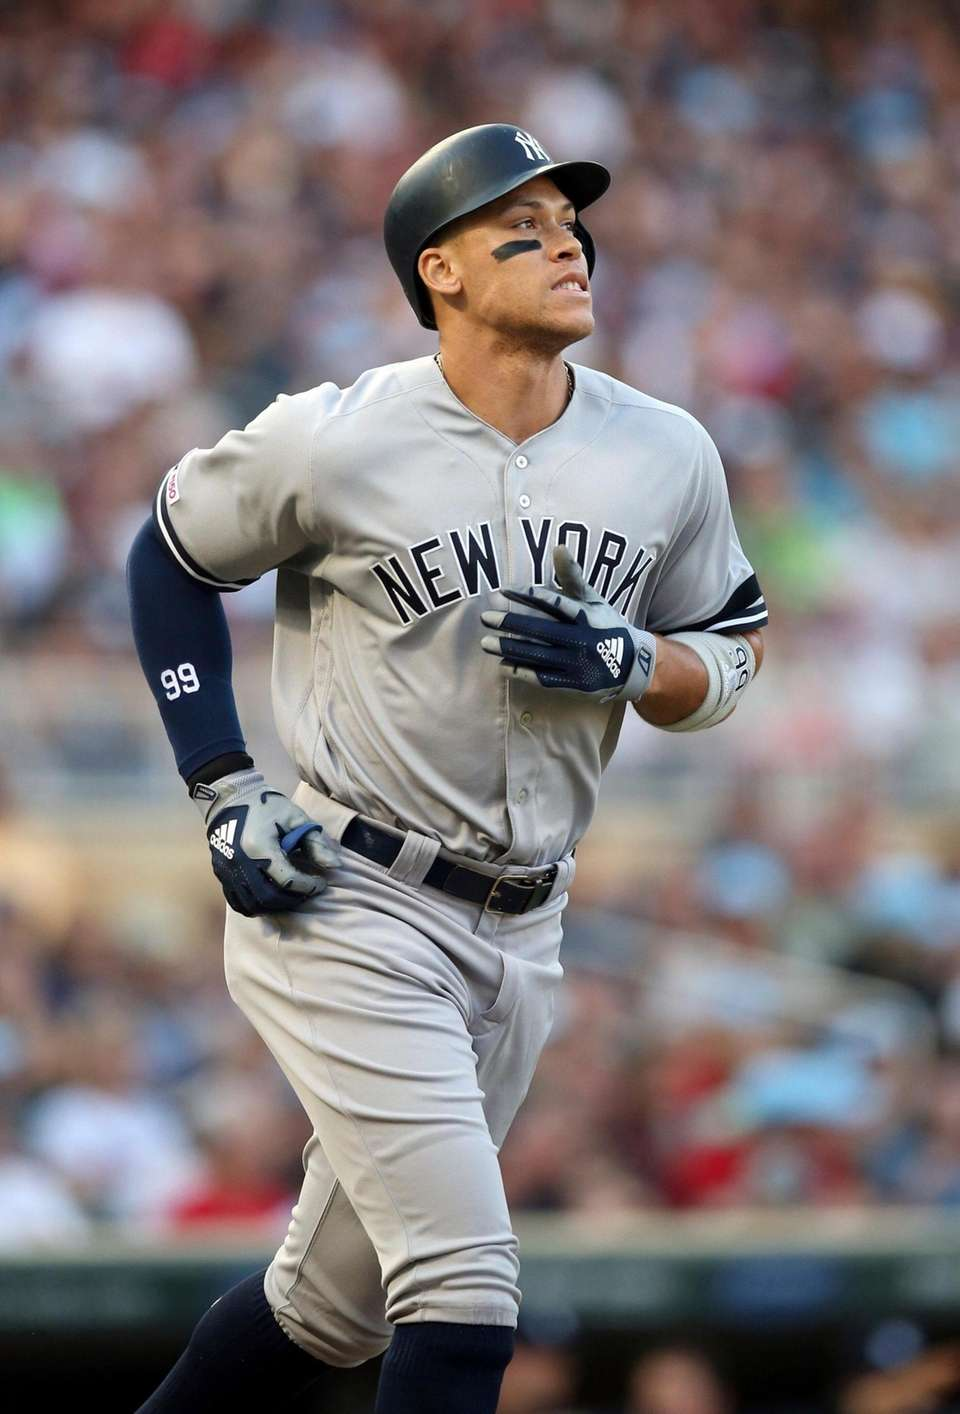 The Yankees' Aaron Judge heads to first base